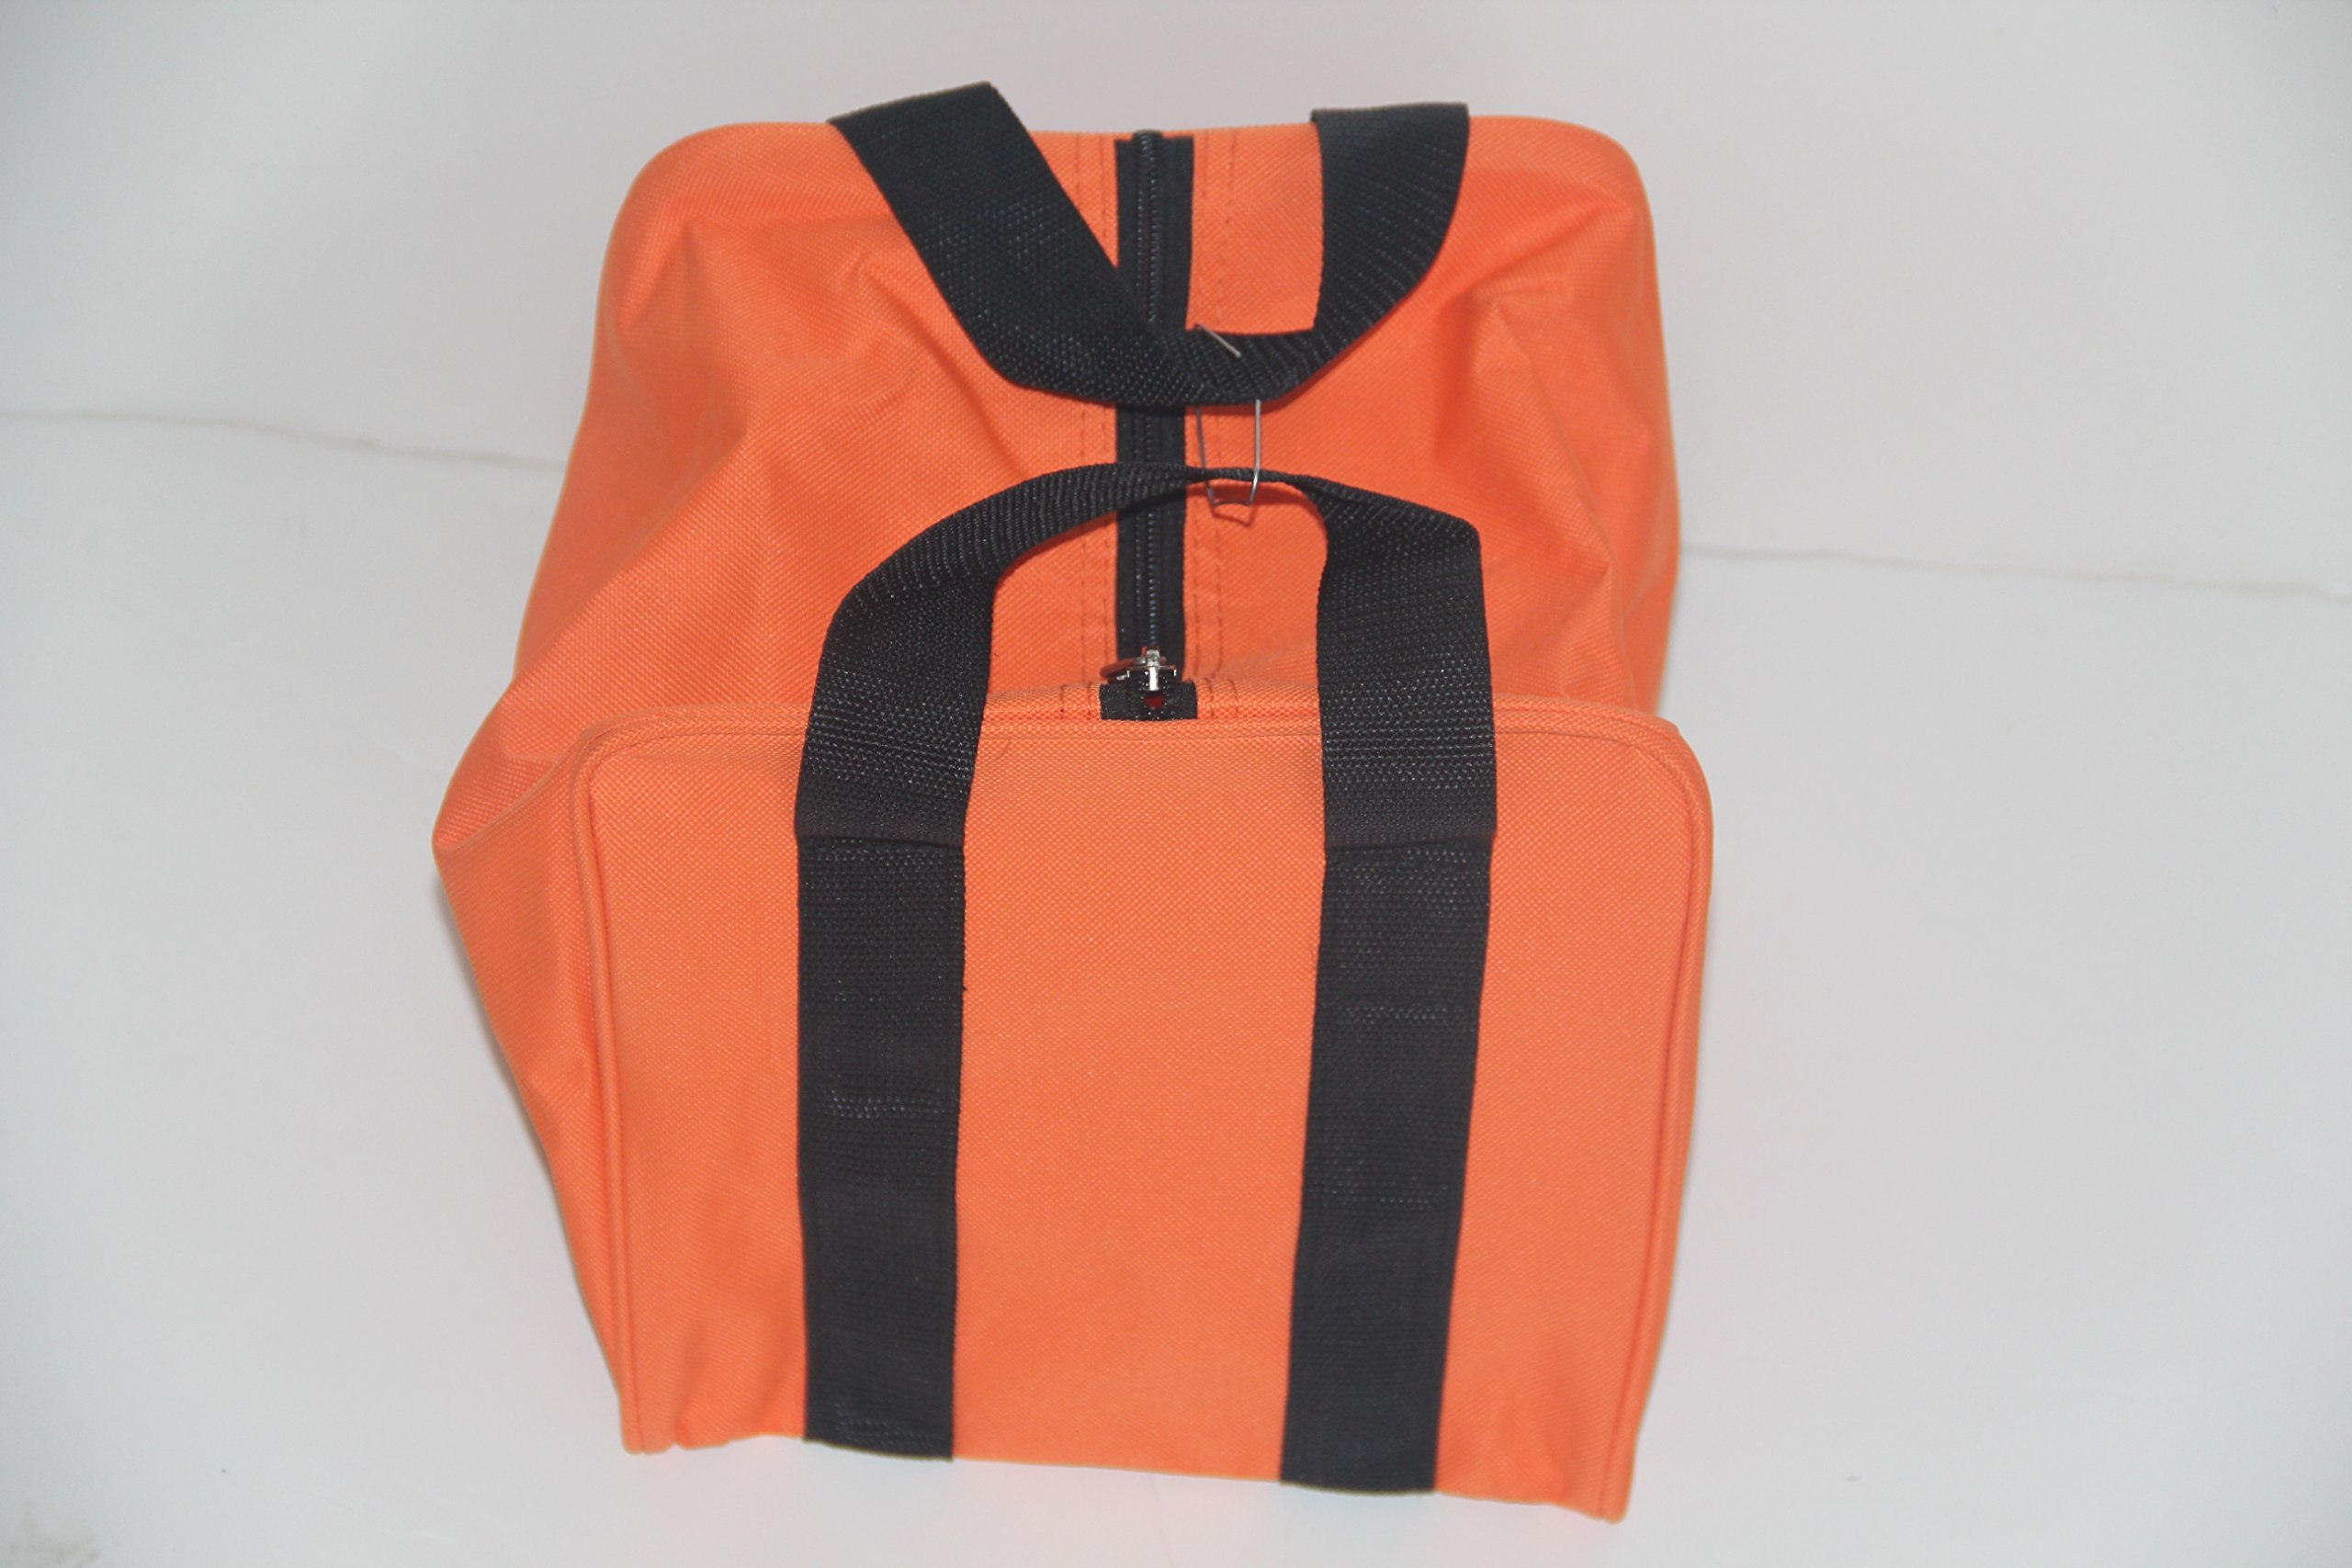 Premium Quality - Extra Heavy Duty Nylon Bocce Bag - Orange with Black Handles by Epco